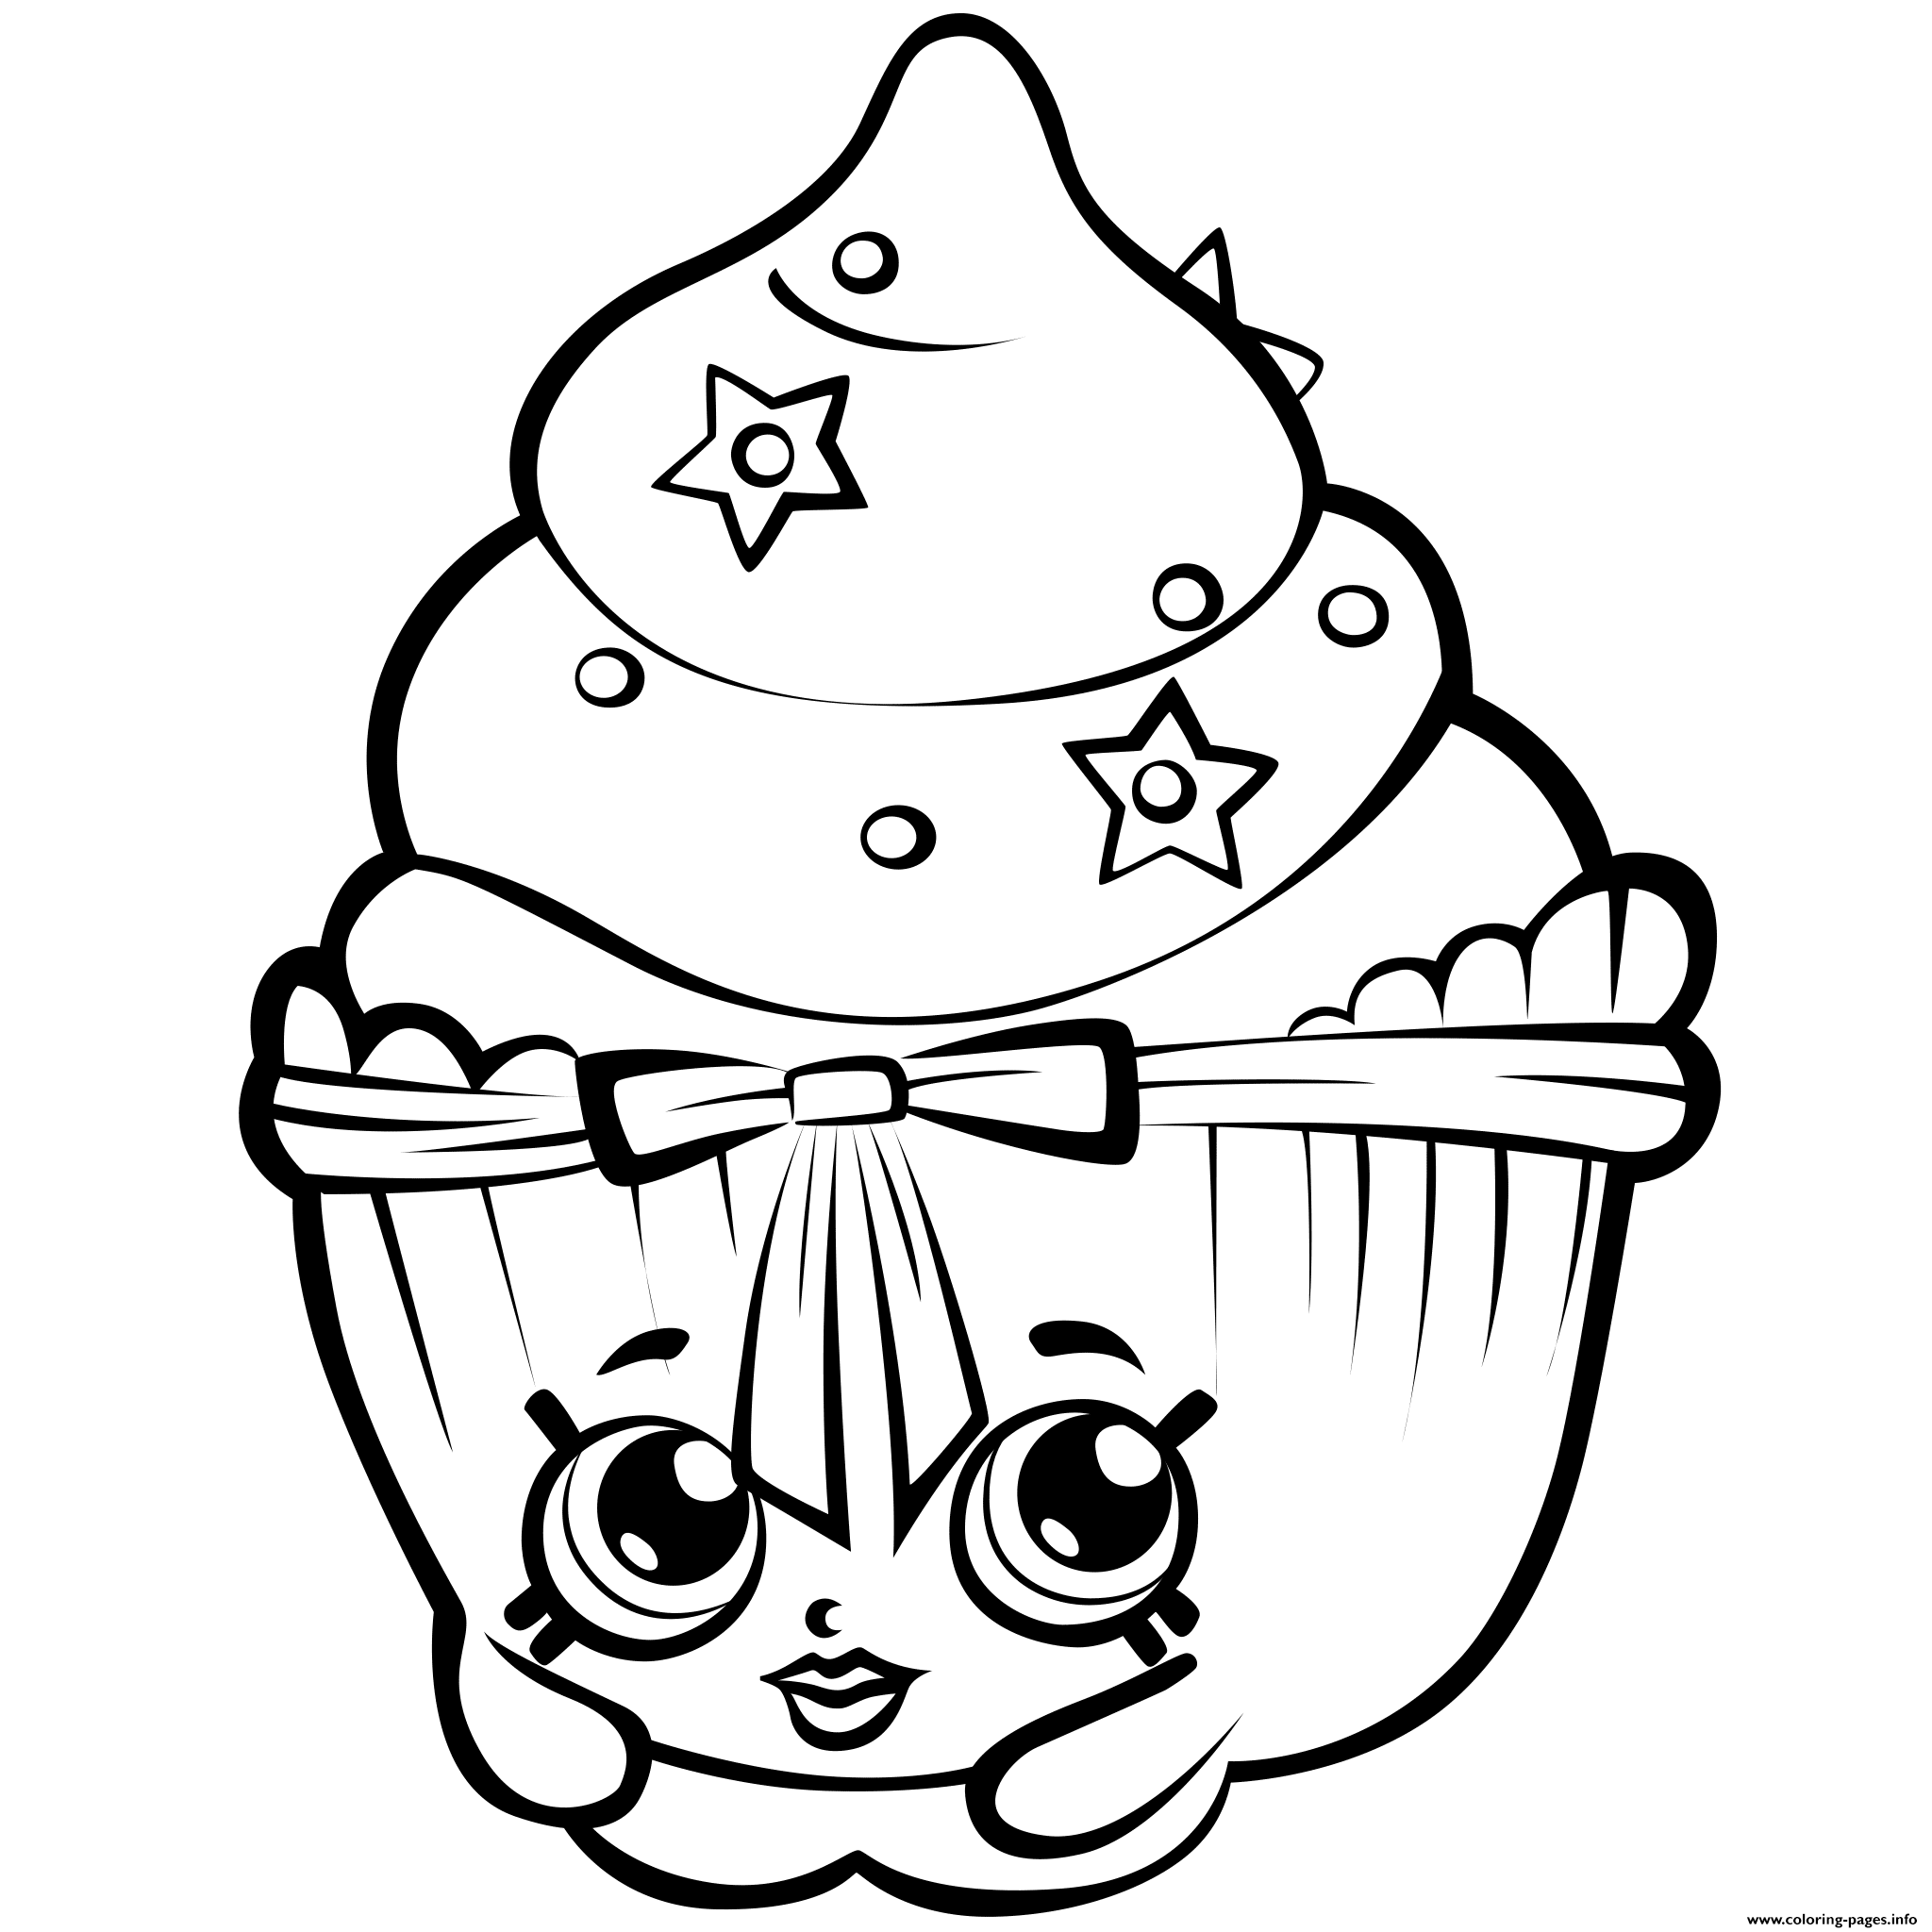 2048x2048 Shopkins Coloring Pages Soda Pop Copy Print Season Patty Cake